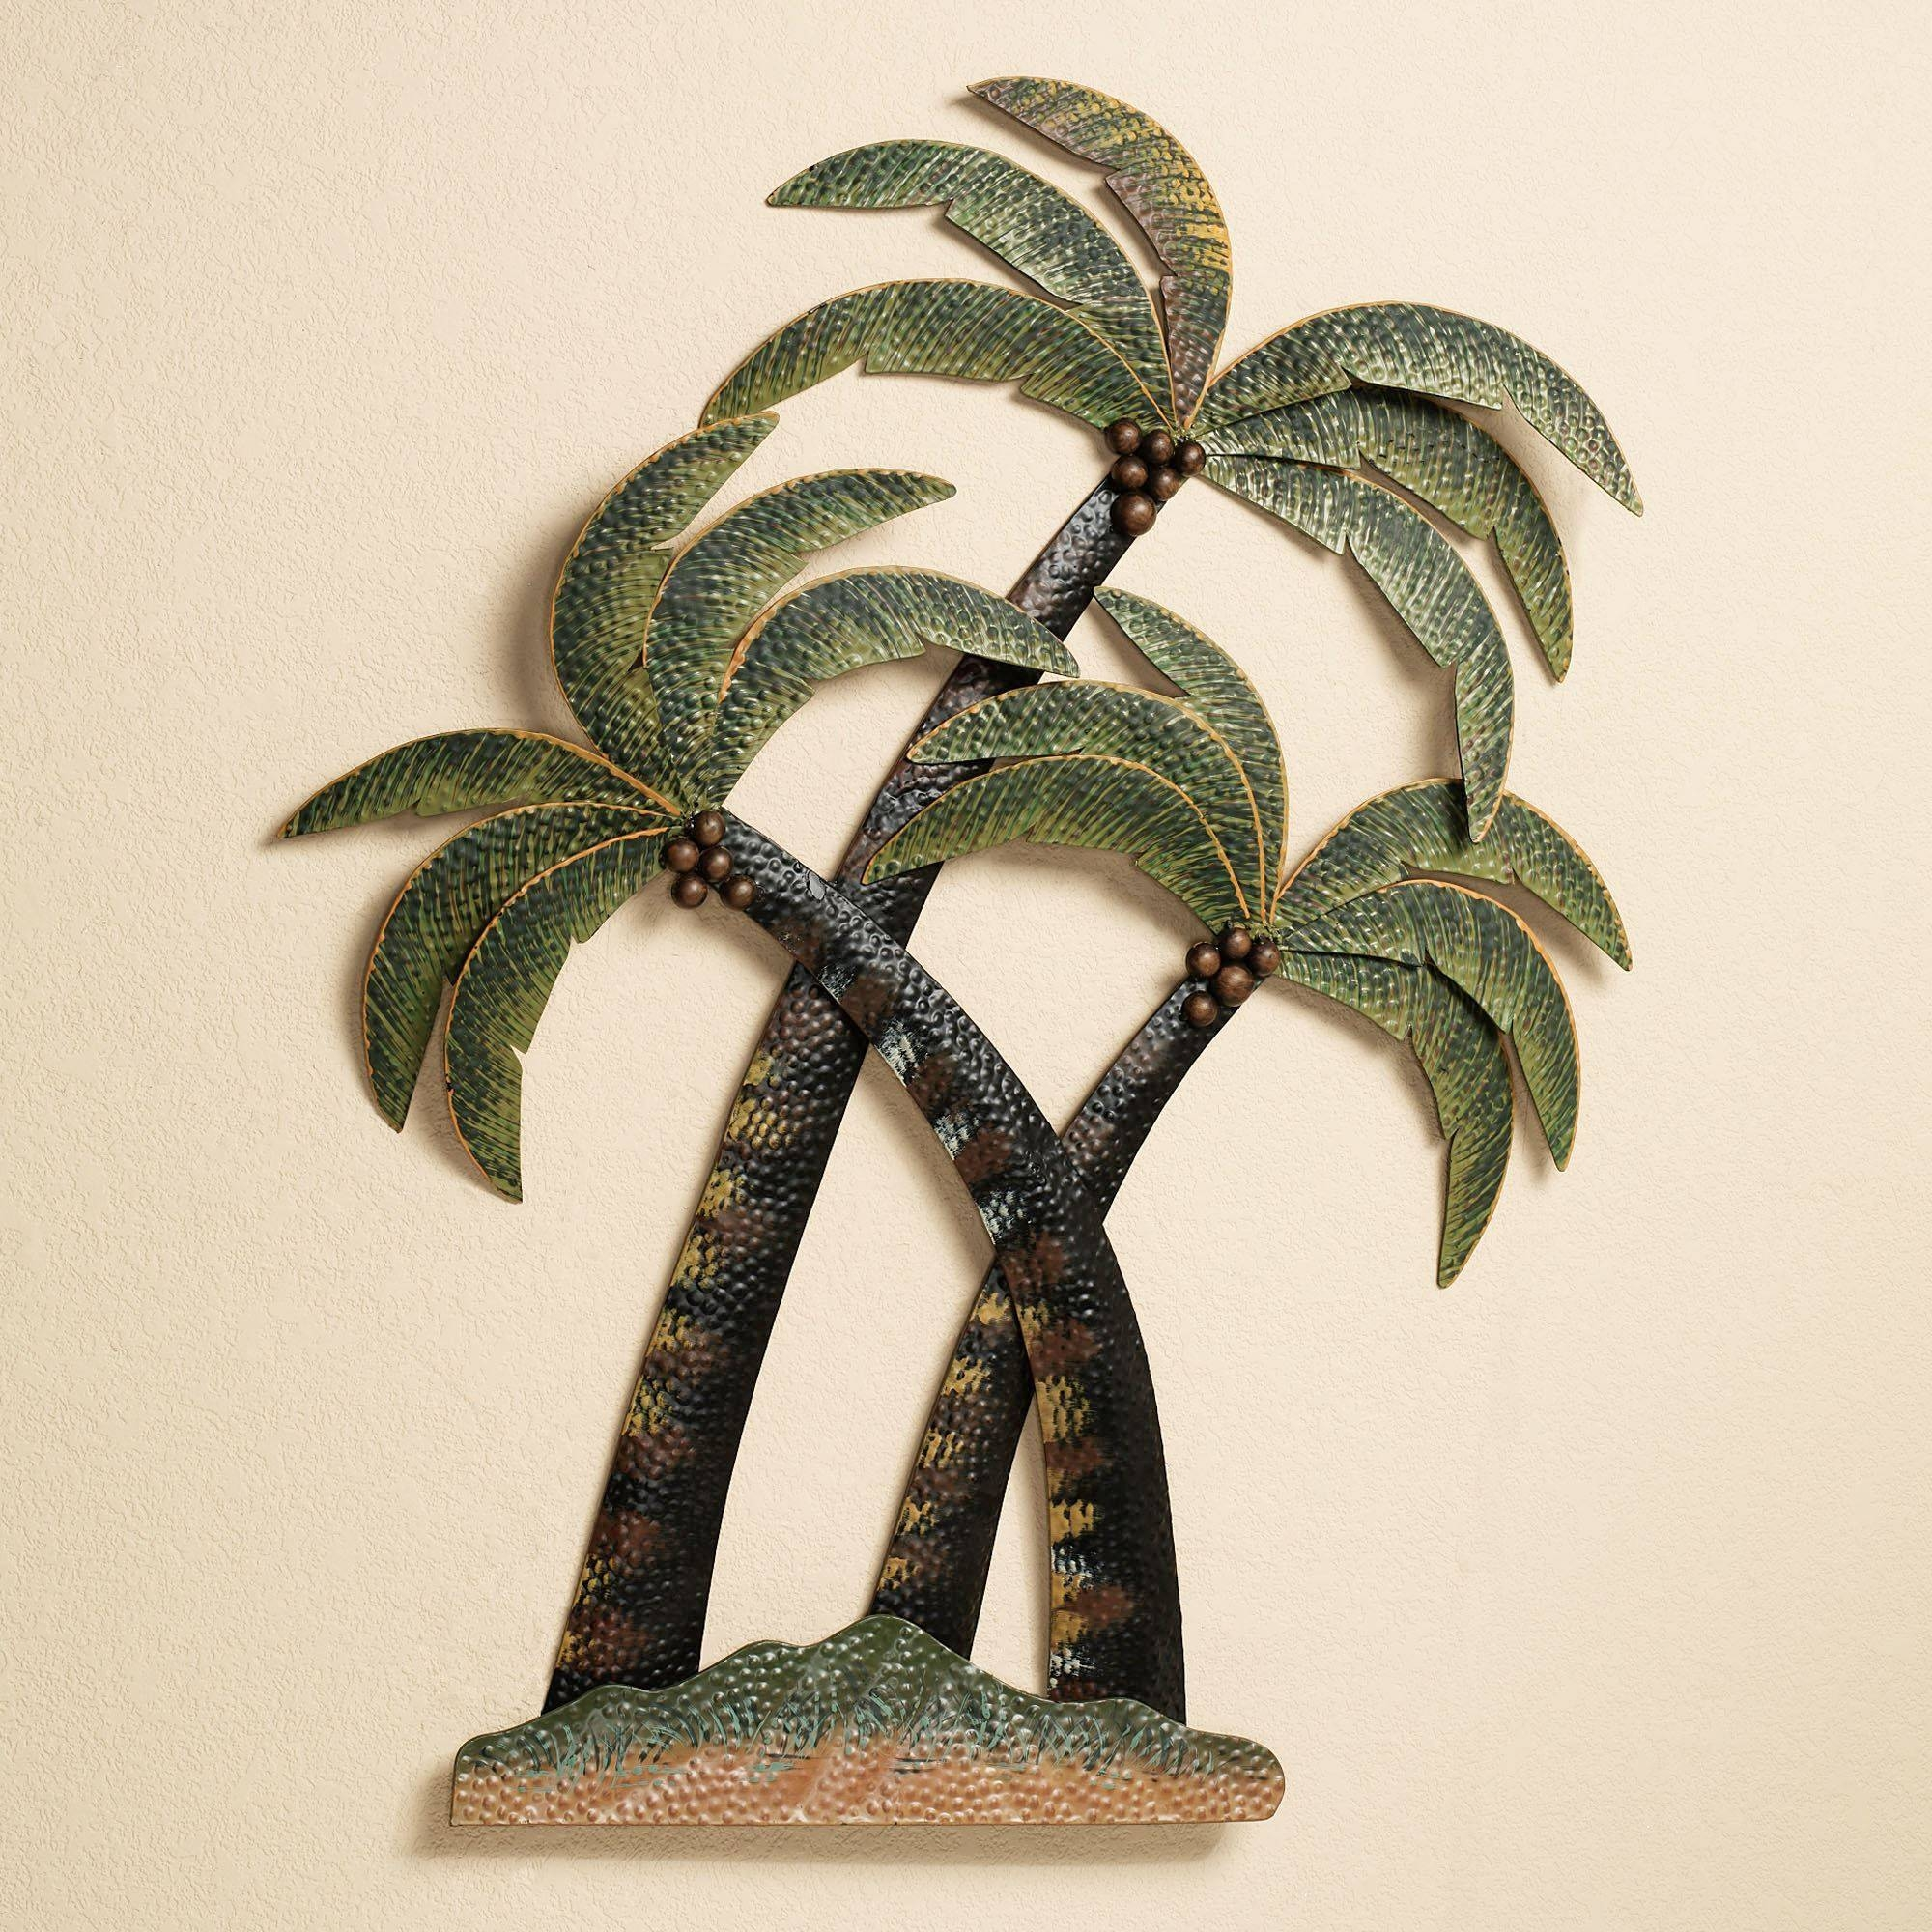 Coco Palm Tree Metal Wall Sculpture With Most Current Metal Wall Art Palm Trees (View 1 of 20)